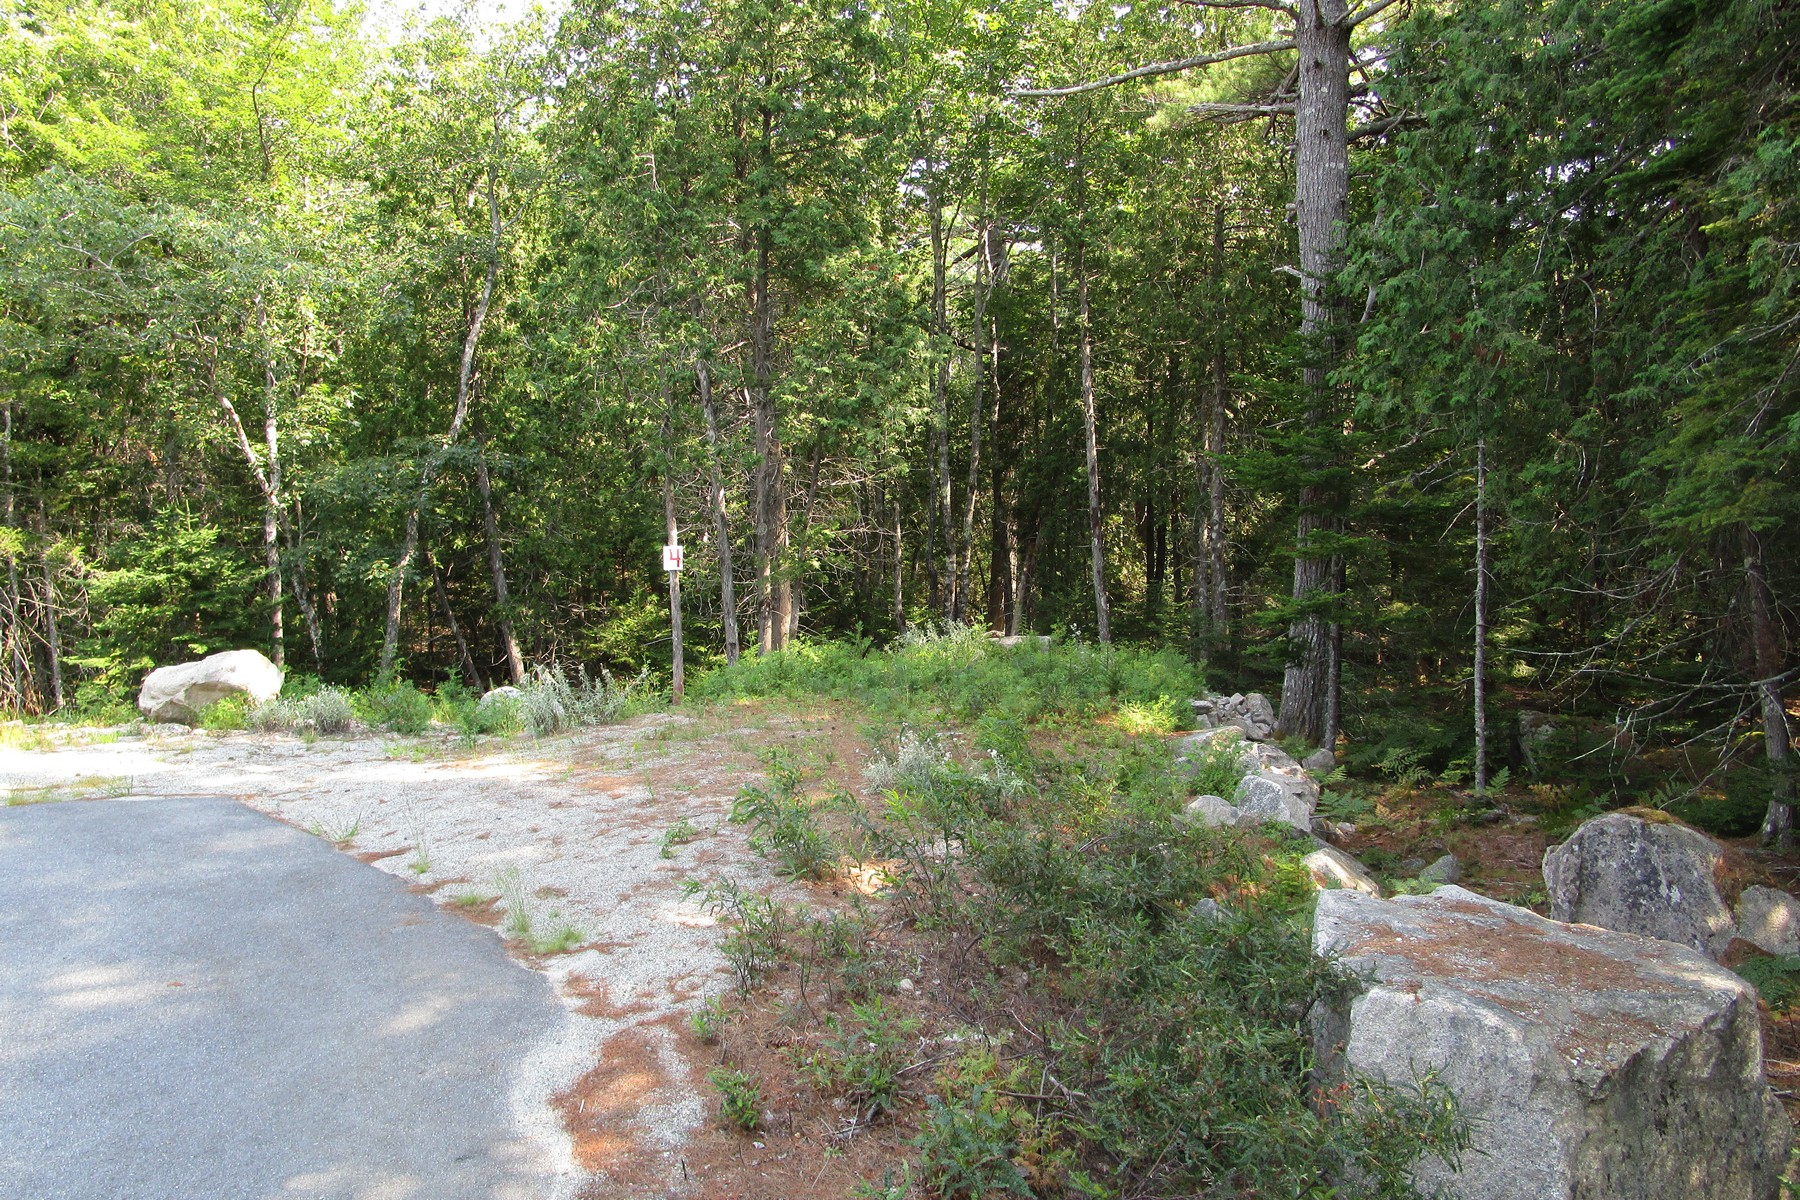 Terreno por un Venta en Echo Woods Road Lot 4 Lot 4 Echo Woods Road Mount Desert, Maine, 04660 Estados Unidos